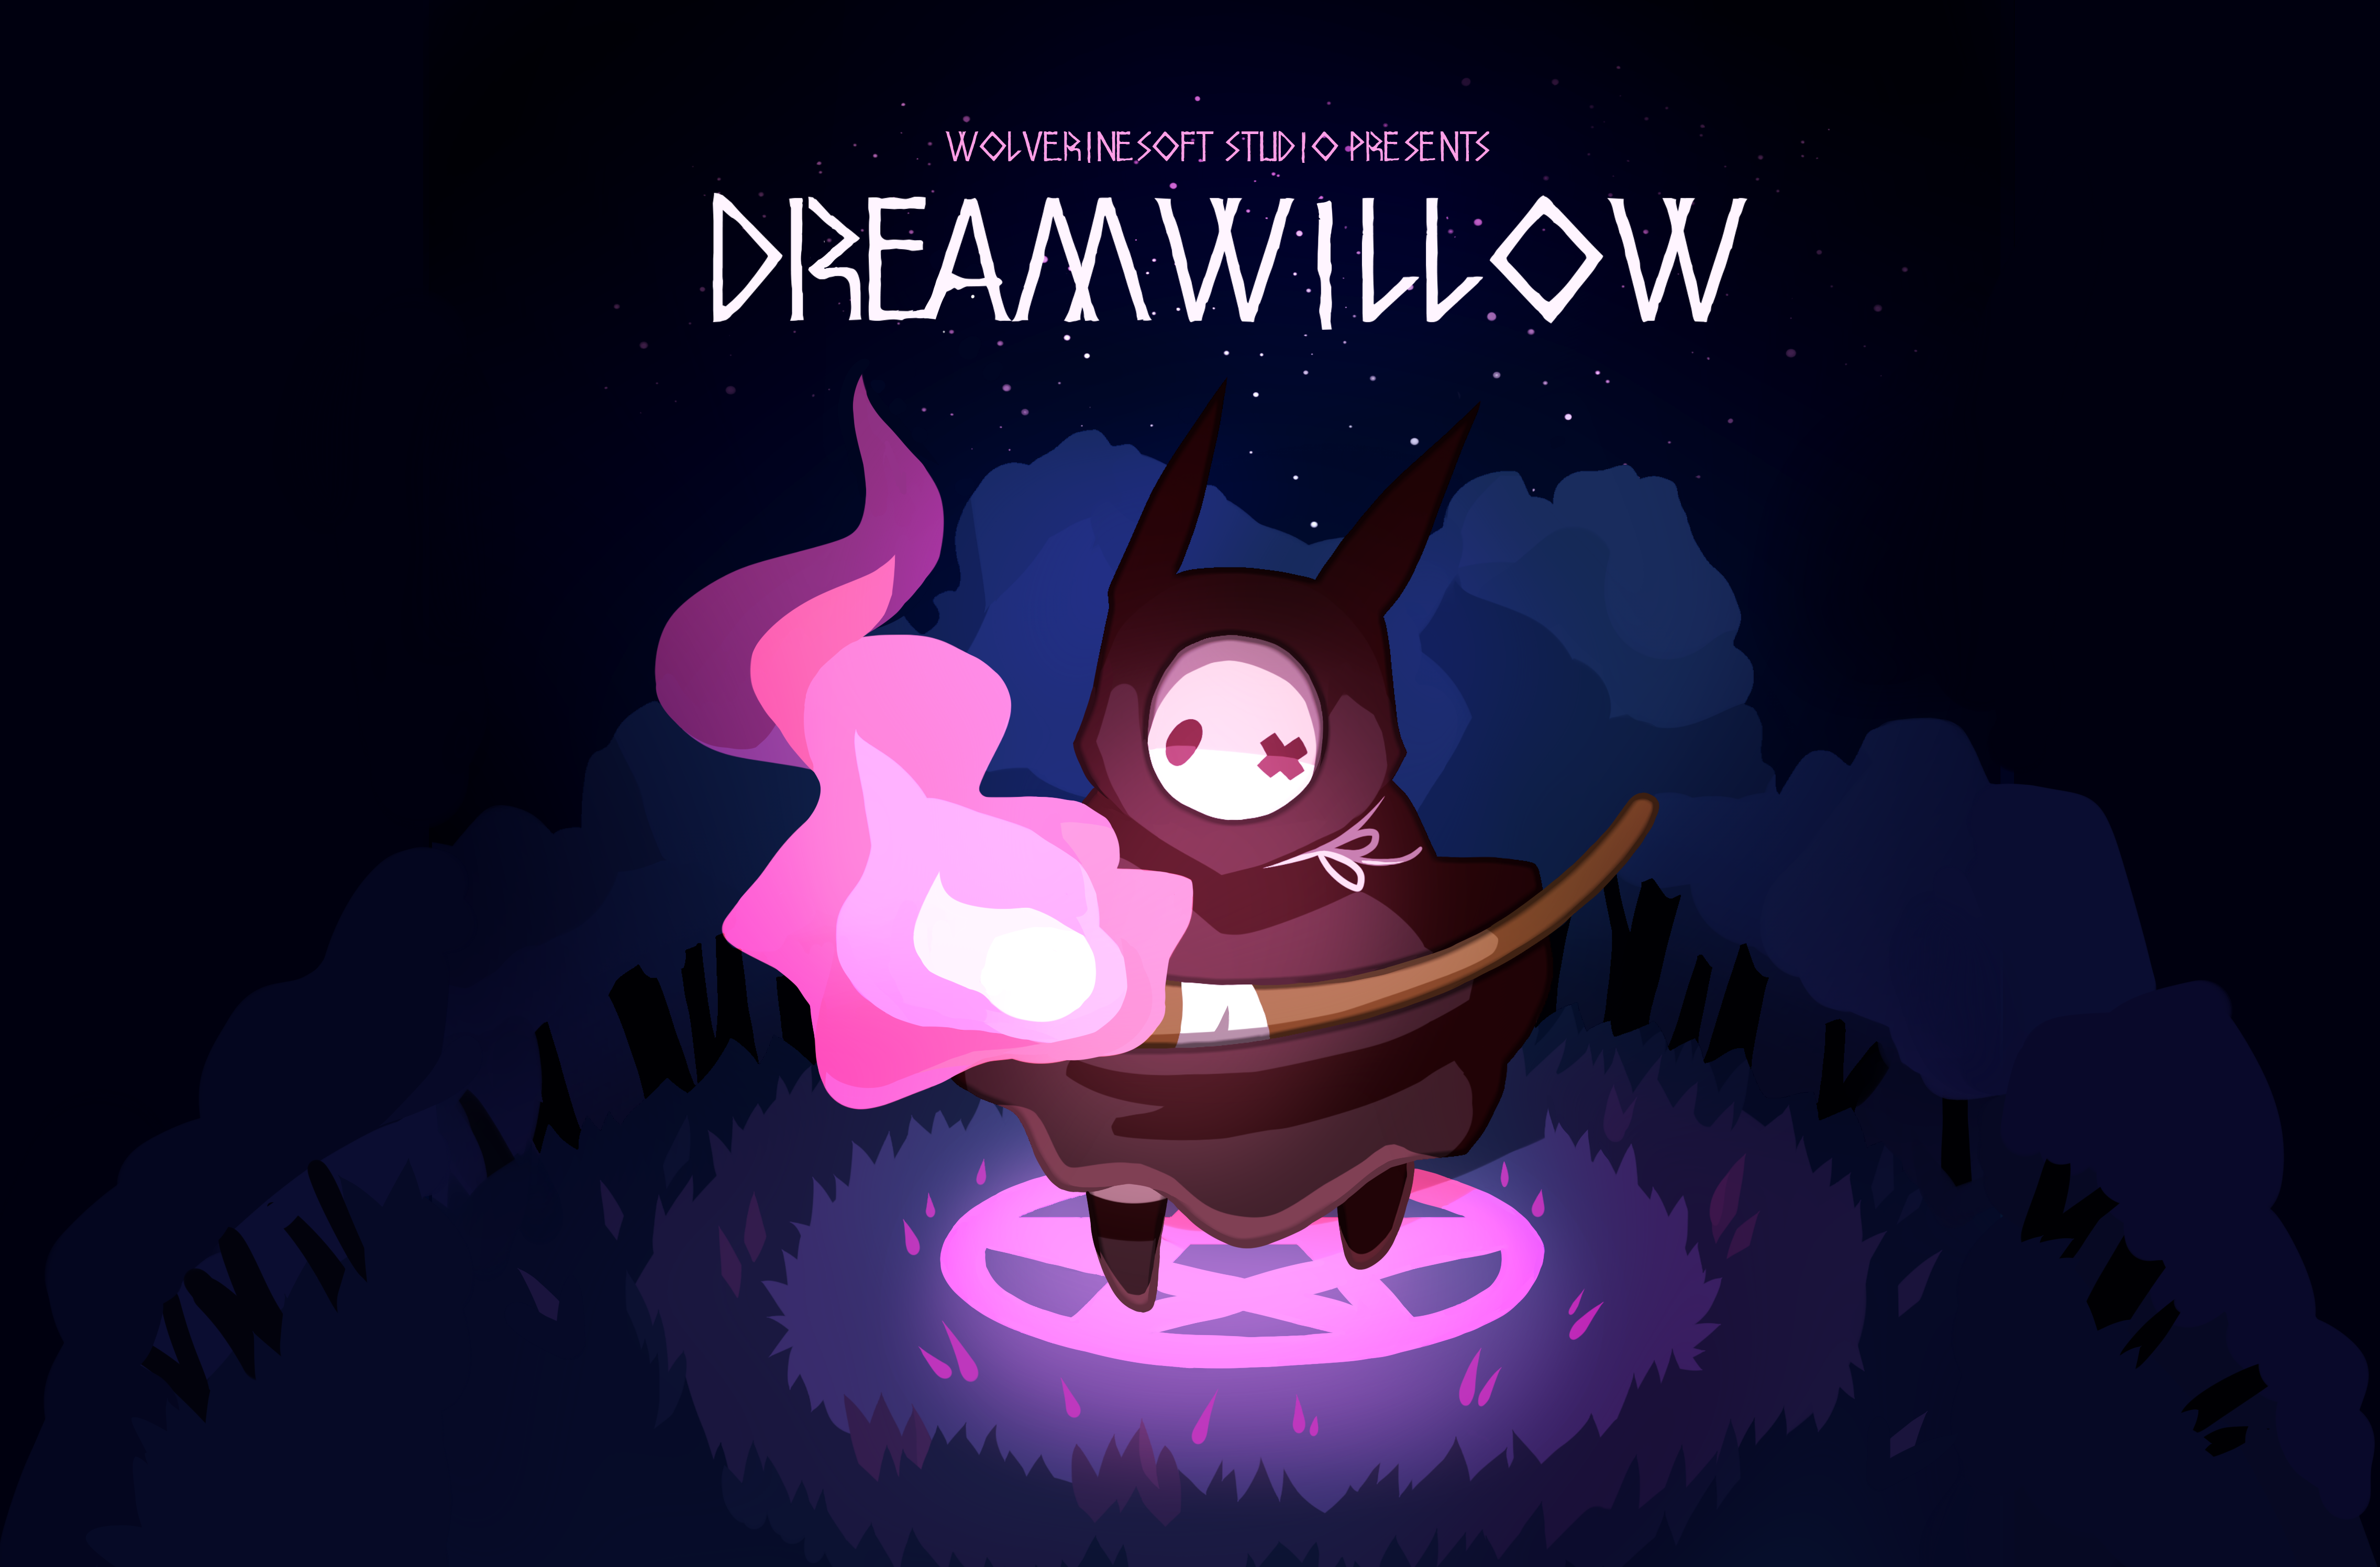 DREAMWILLOW